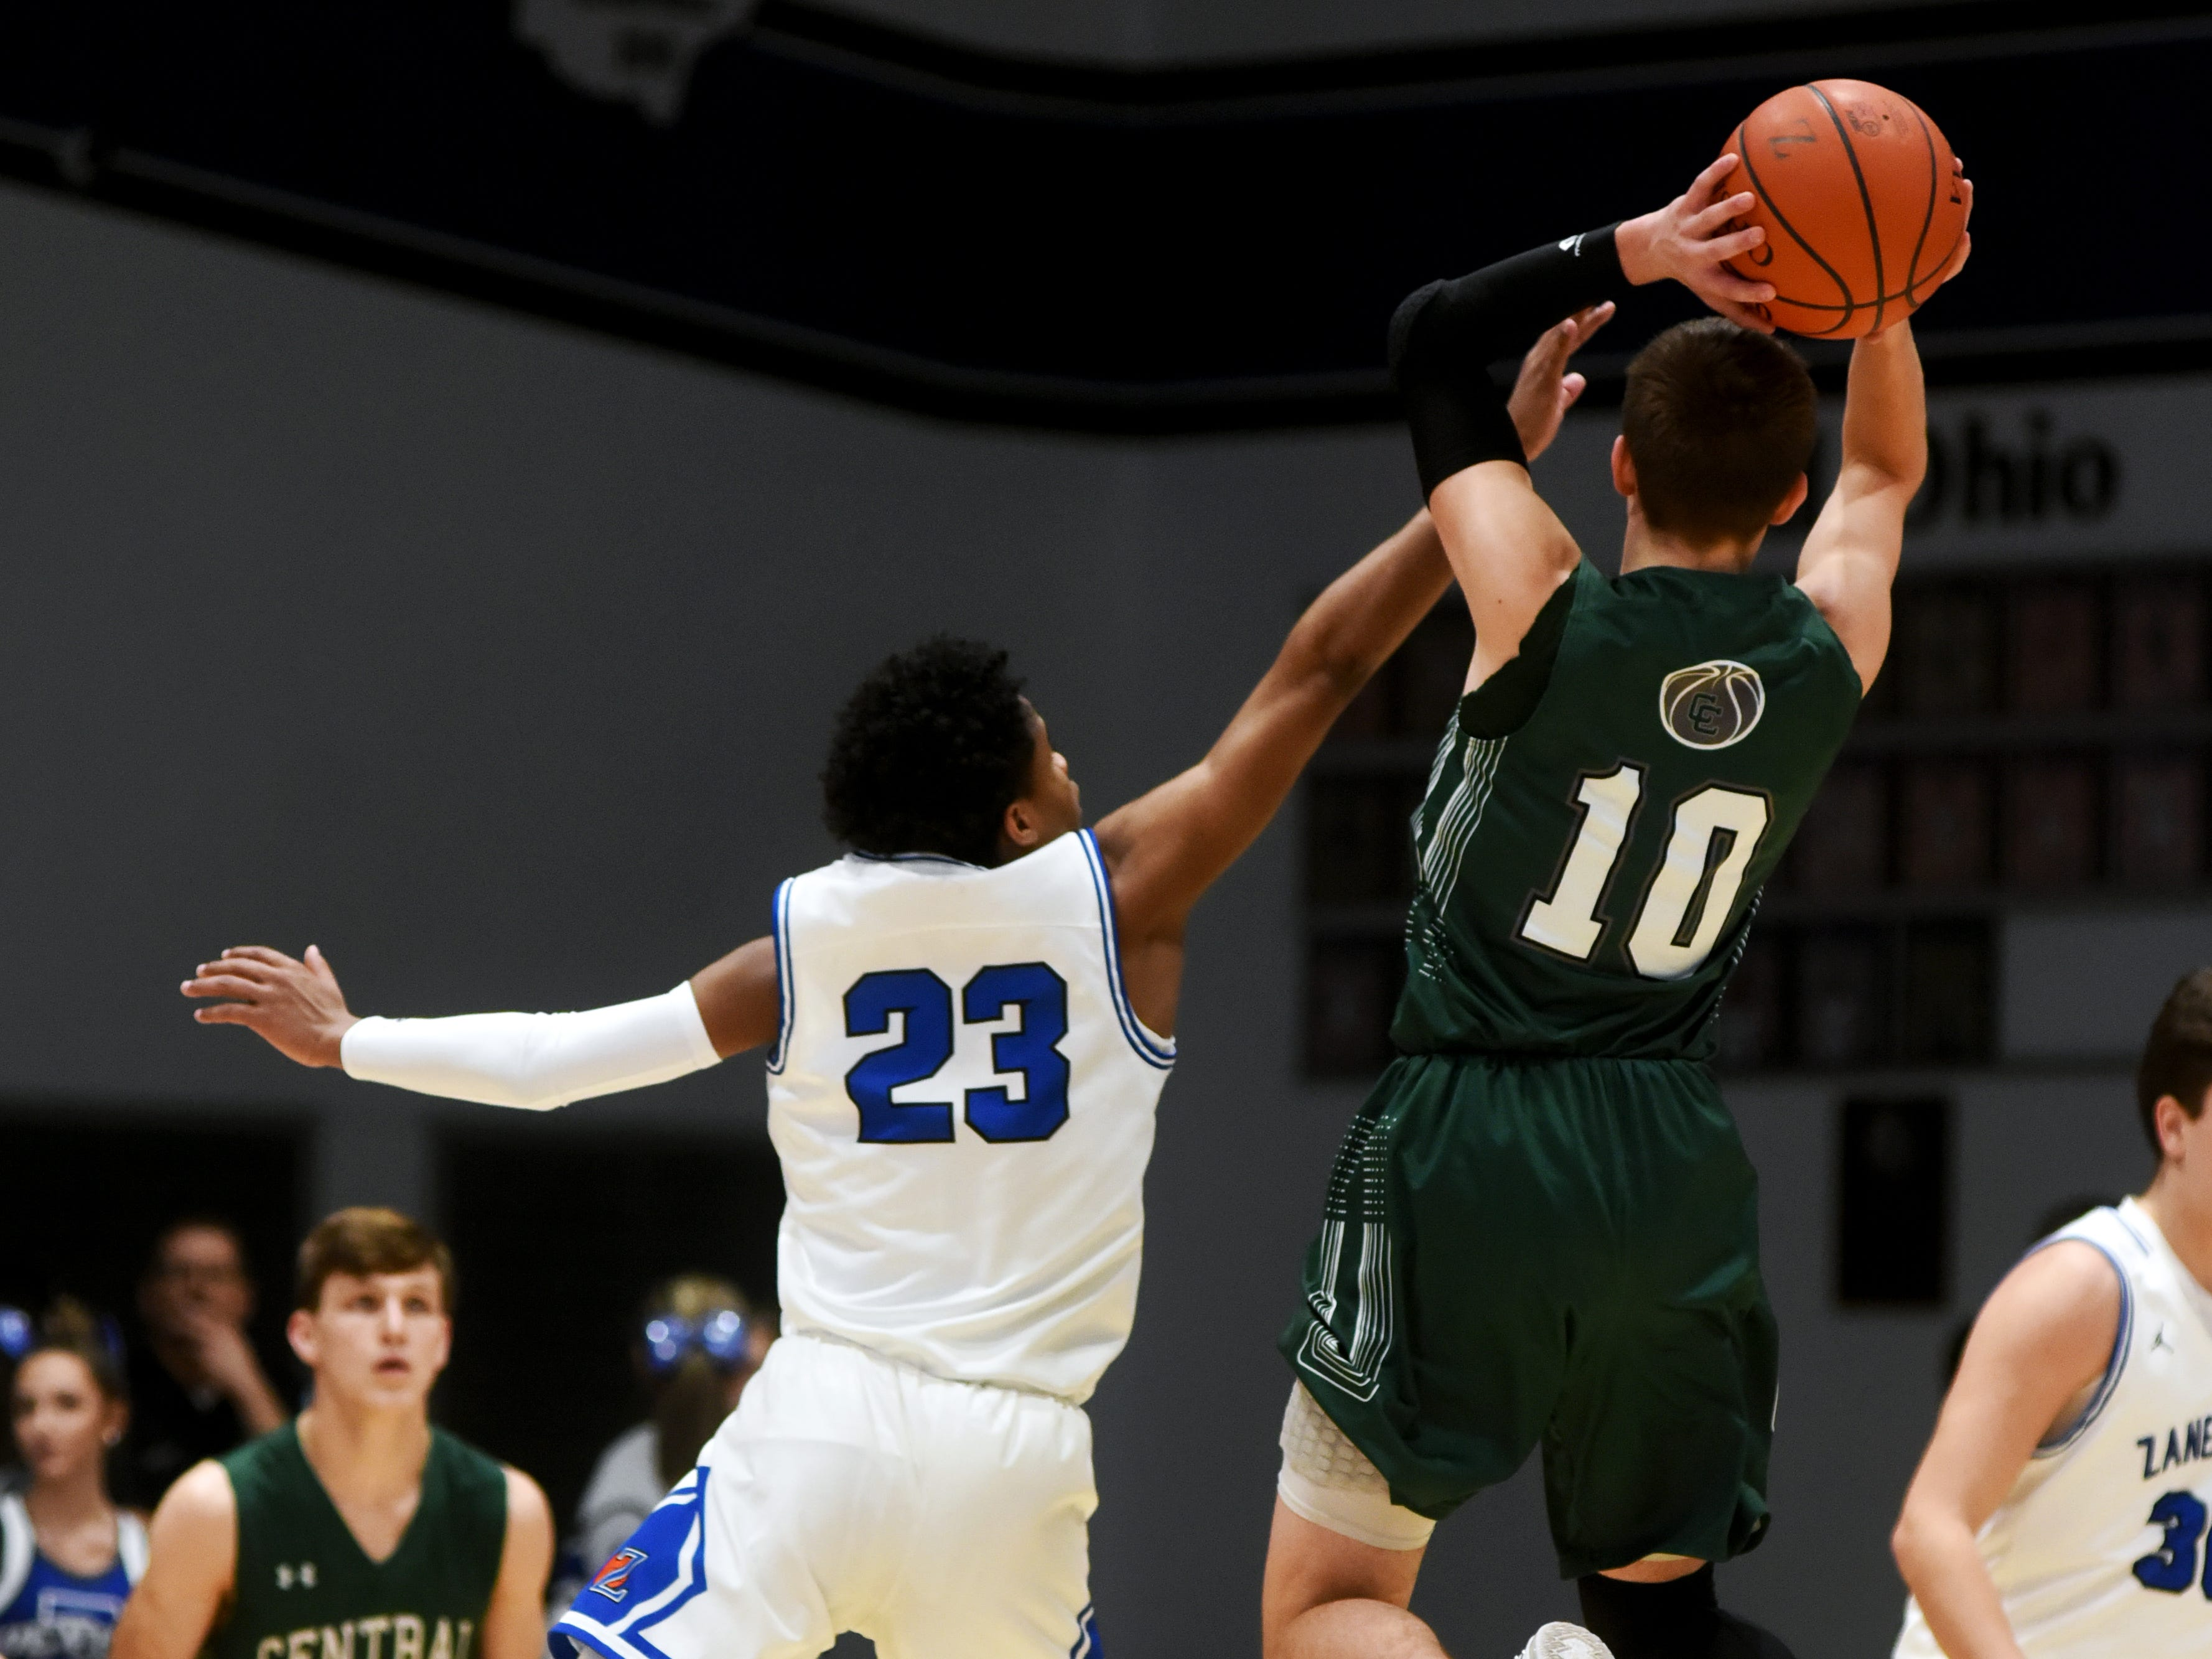 Zanesville's Greg Gibson, left, goes up to block a shot against Canton Central Catholic's Dylan Johnson.